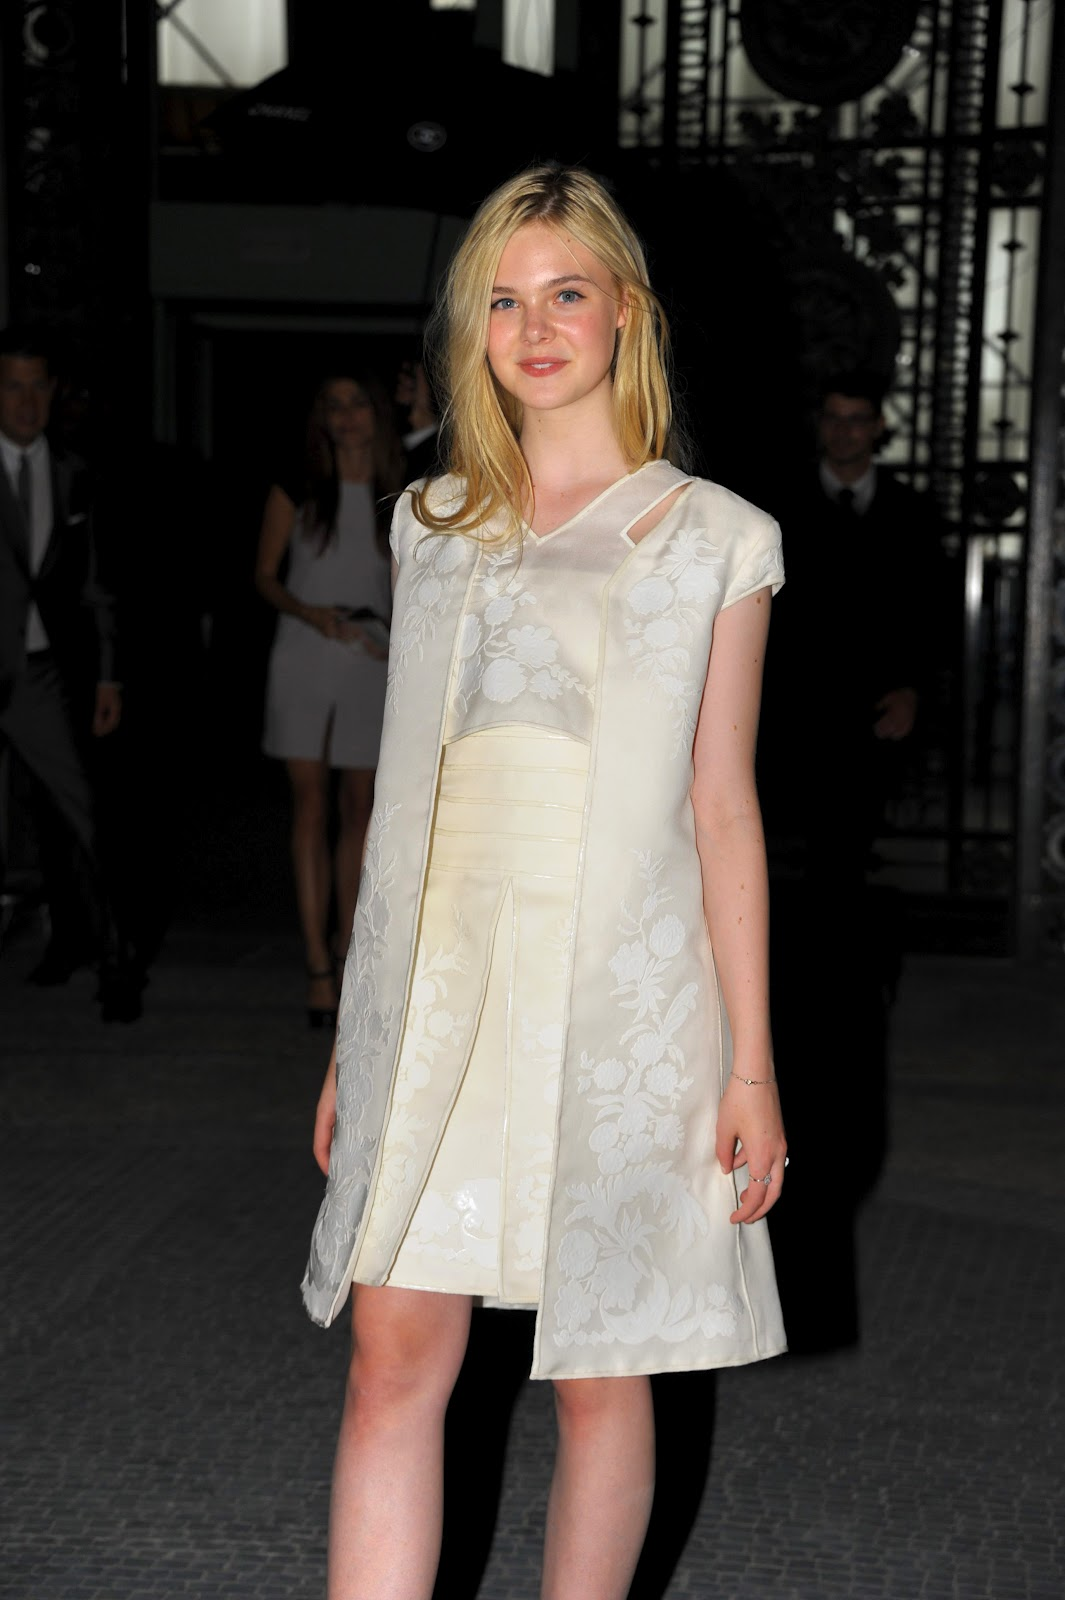 http://3.bp.blogspot.com/-LcpQkw8eRNI/UCwRsO2fqUI/AAAAAAAAJb0/zp3RWaCy5r4/s1600/Elle+Fanning+at+Chanel+Front+Row+-+Paris+Fashion+Week+Haute+Couture+FW+20112012+%28July+7,2011%29+%282%29.jpg